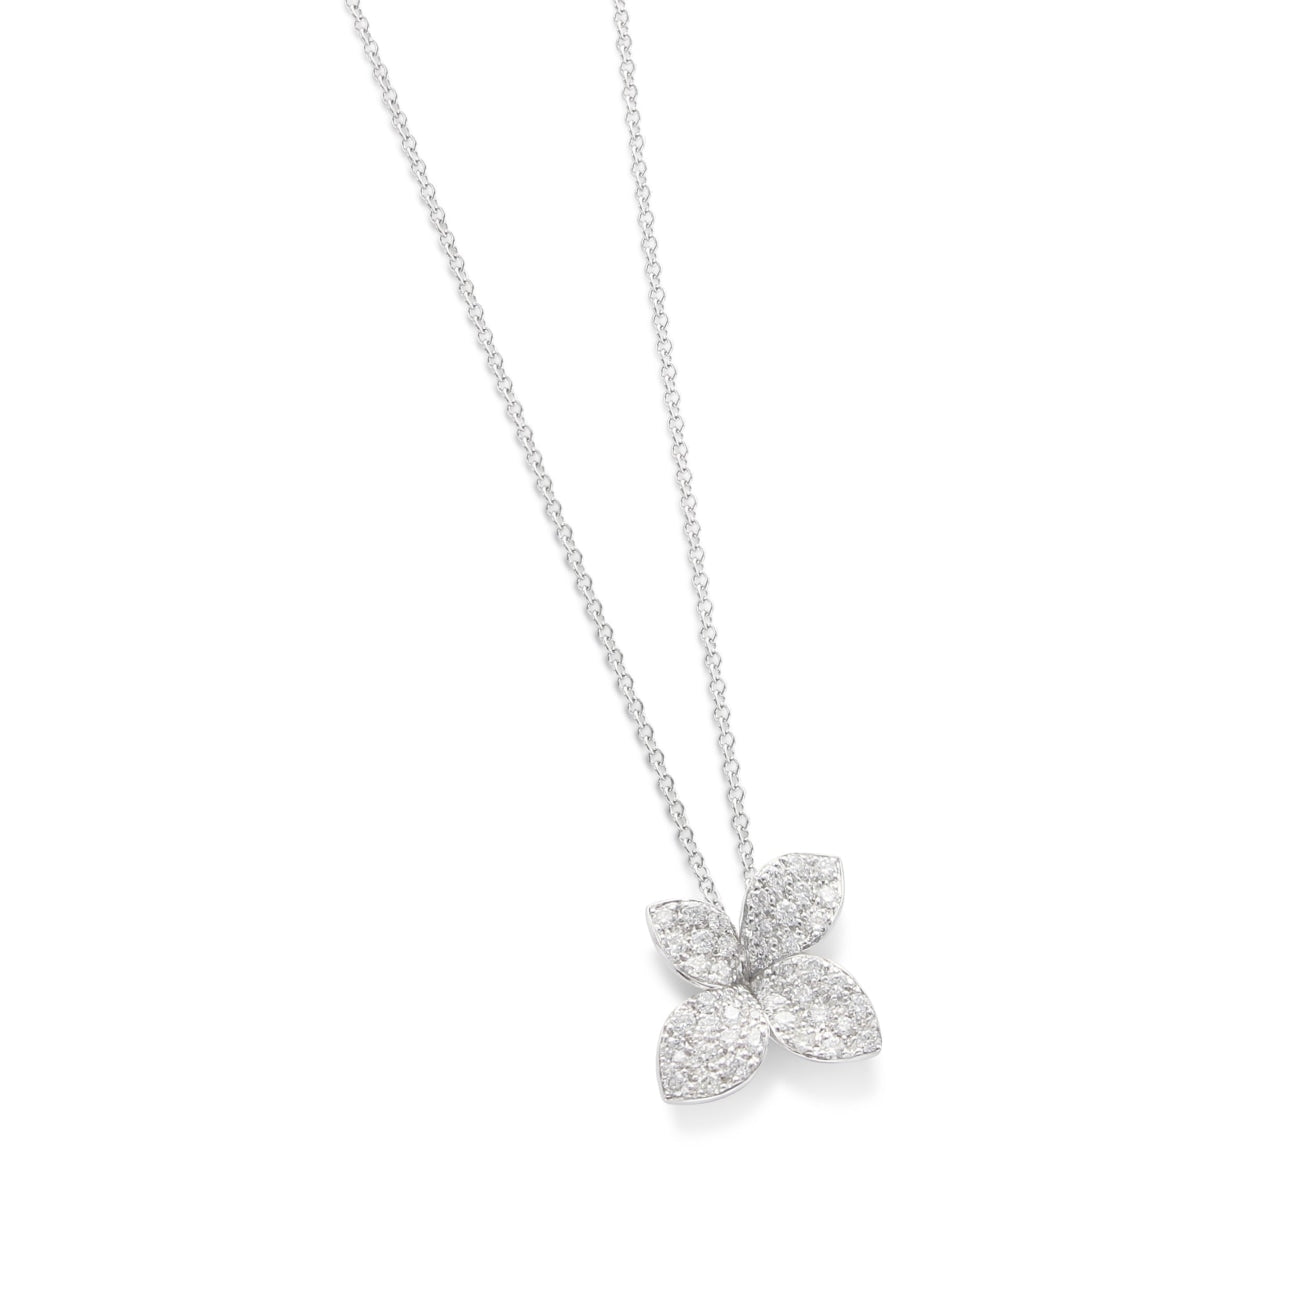 Pasquale Bruni Jewelry - PETIT SECRET GARDEN DIAM FLOWER PENDANT | Manfredi Jewels